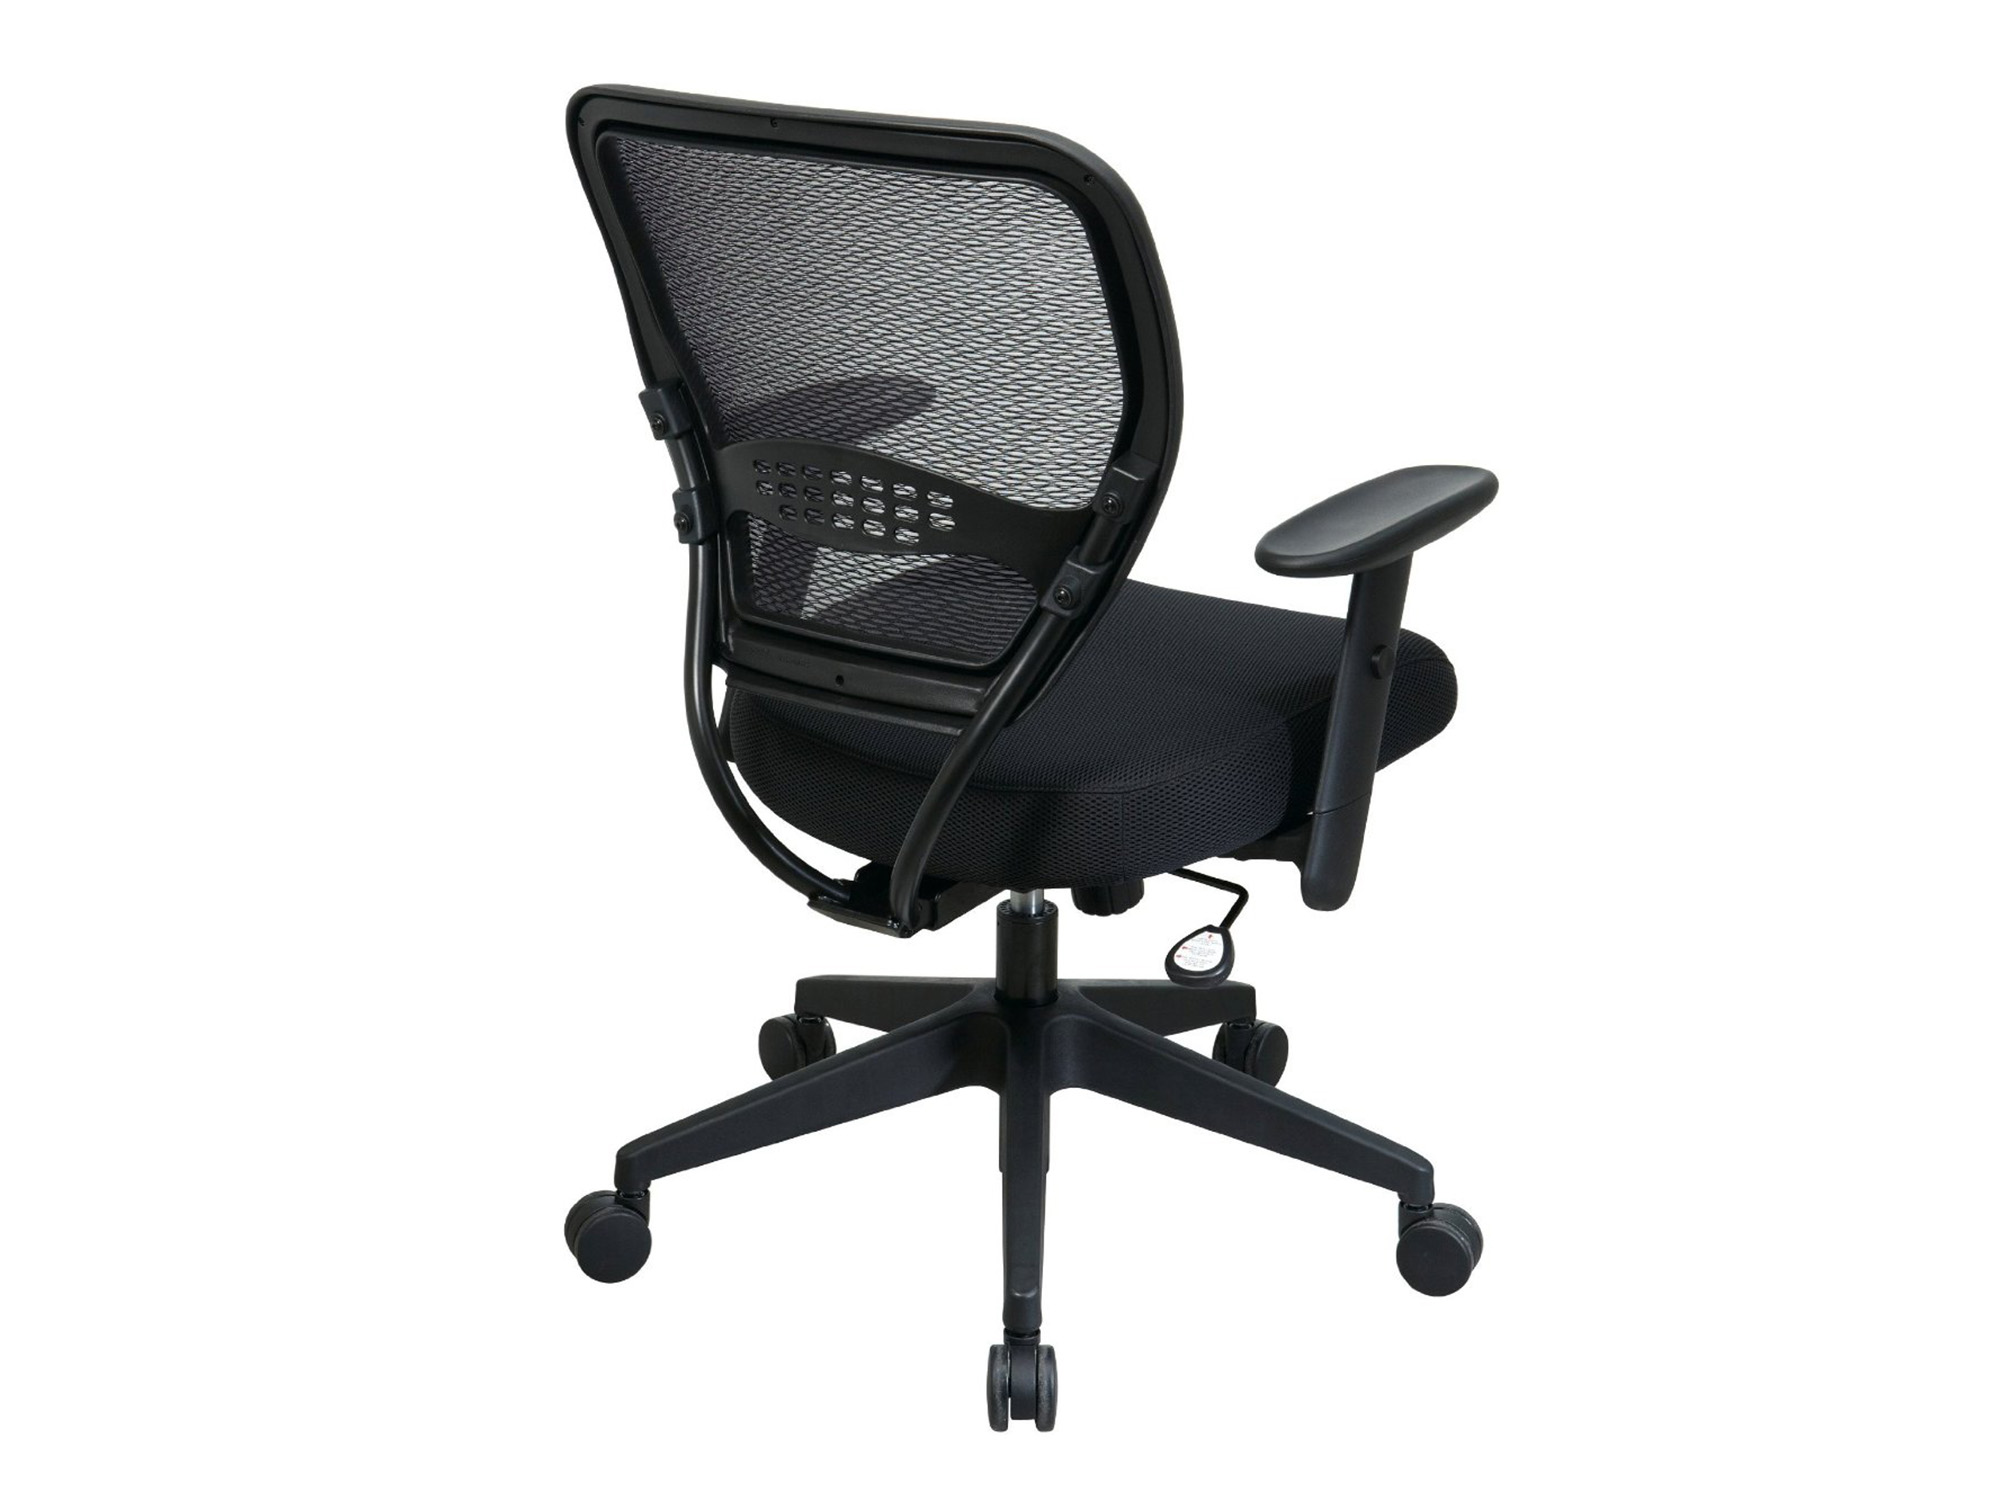 ergonomic mesh office chair office task chairs chairs